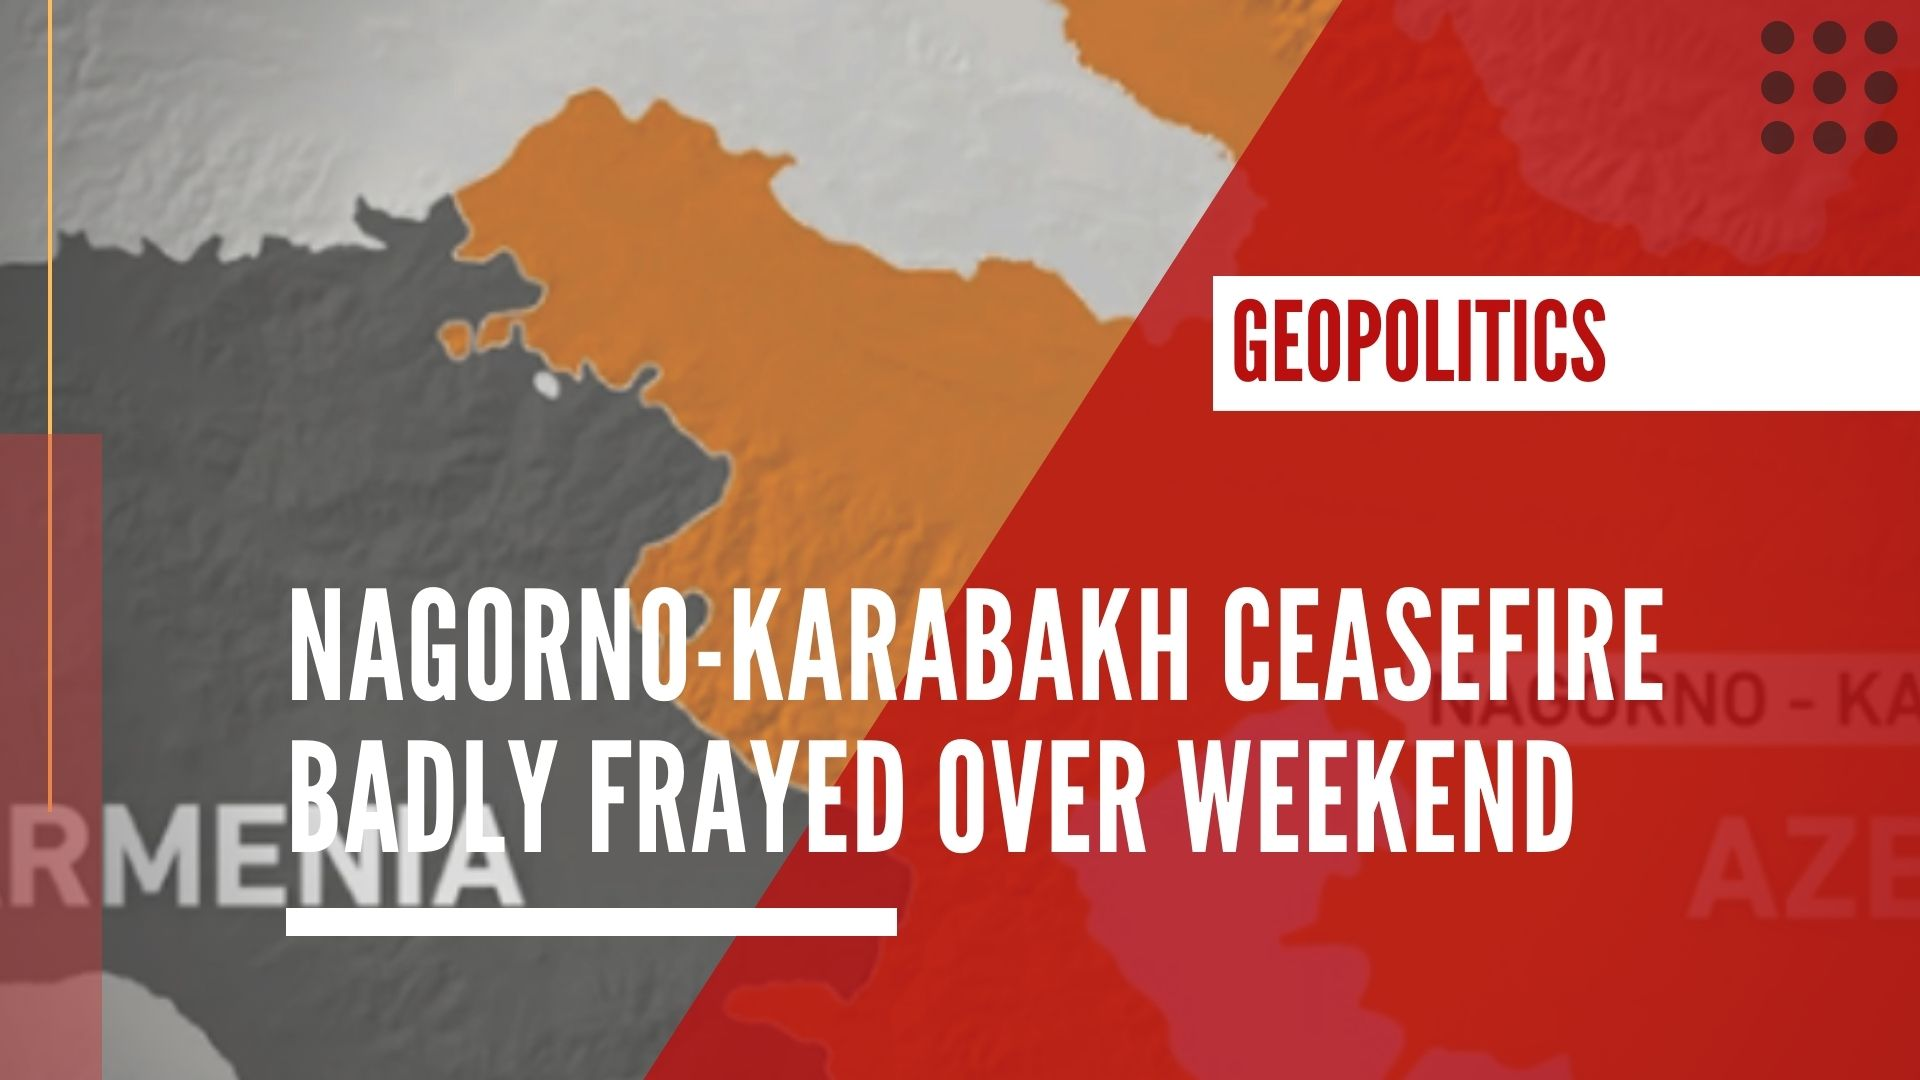 Nagorno-Karabakh ceasefire badly frayed over weekend